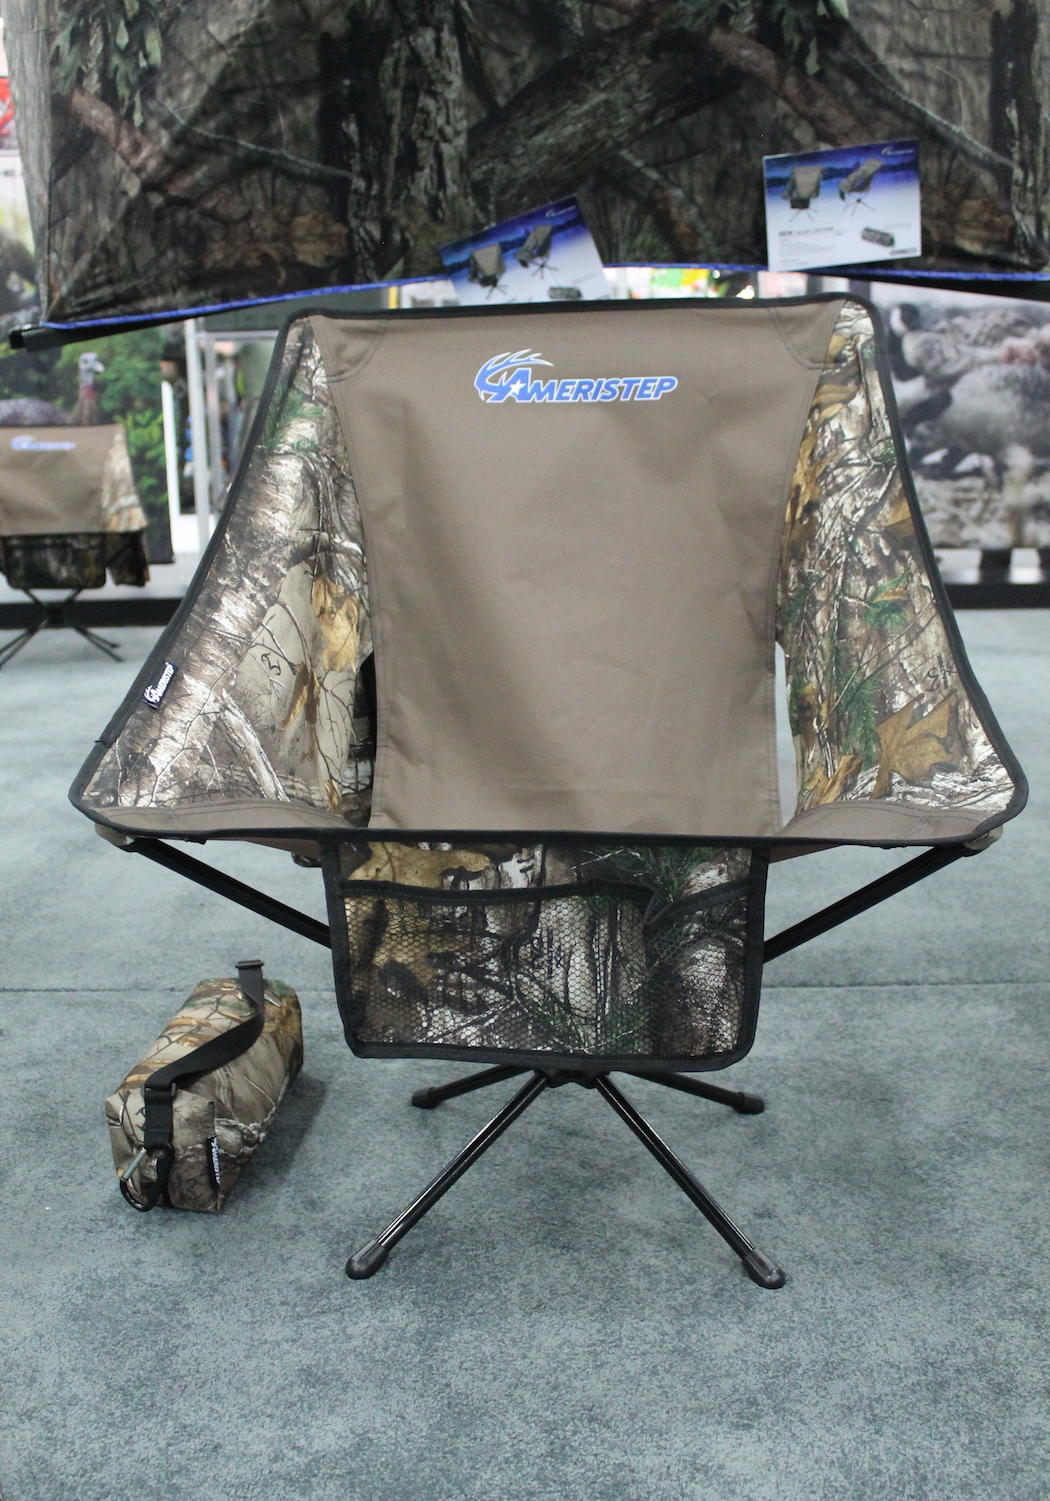 New Ground Blinds And Accessories From The 2016 Shot Show